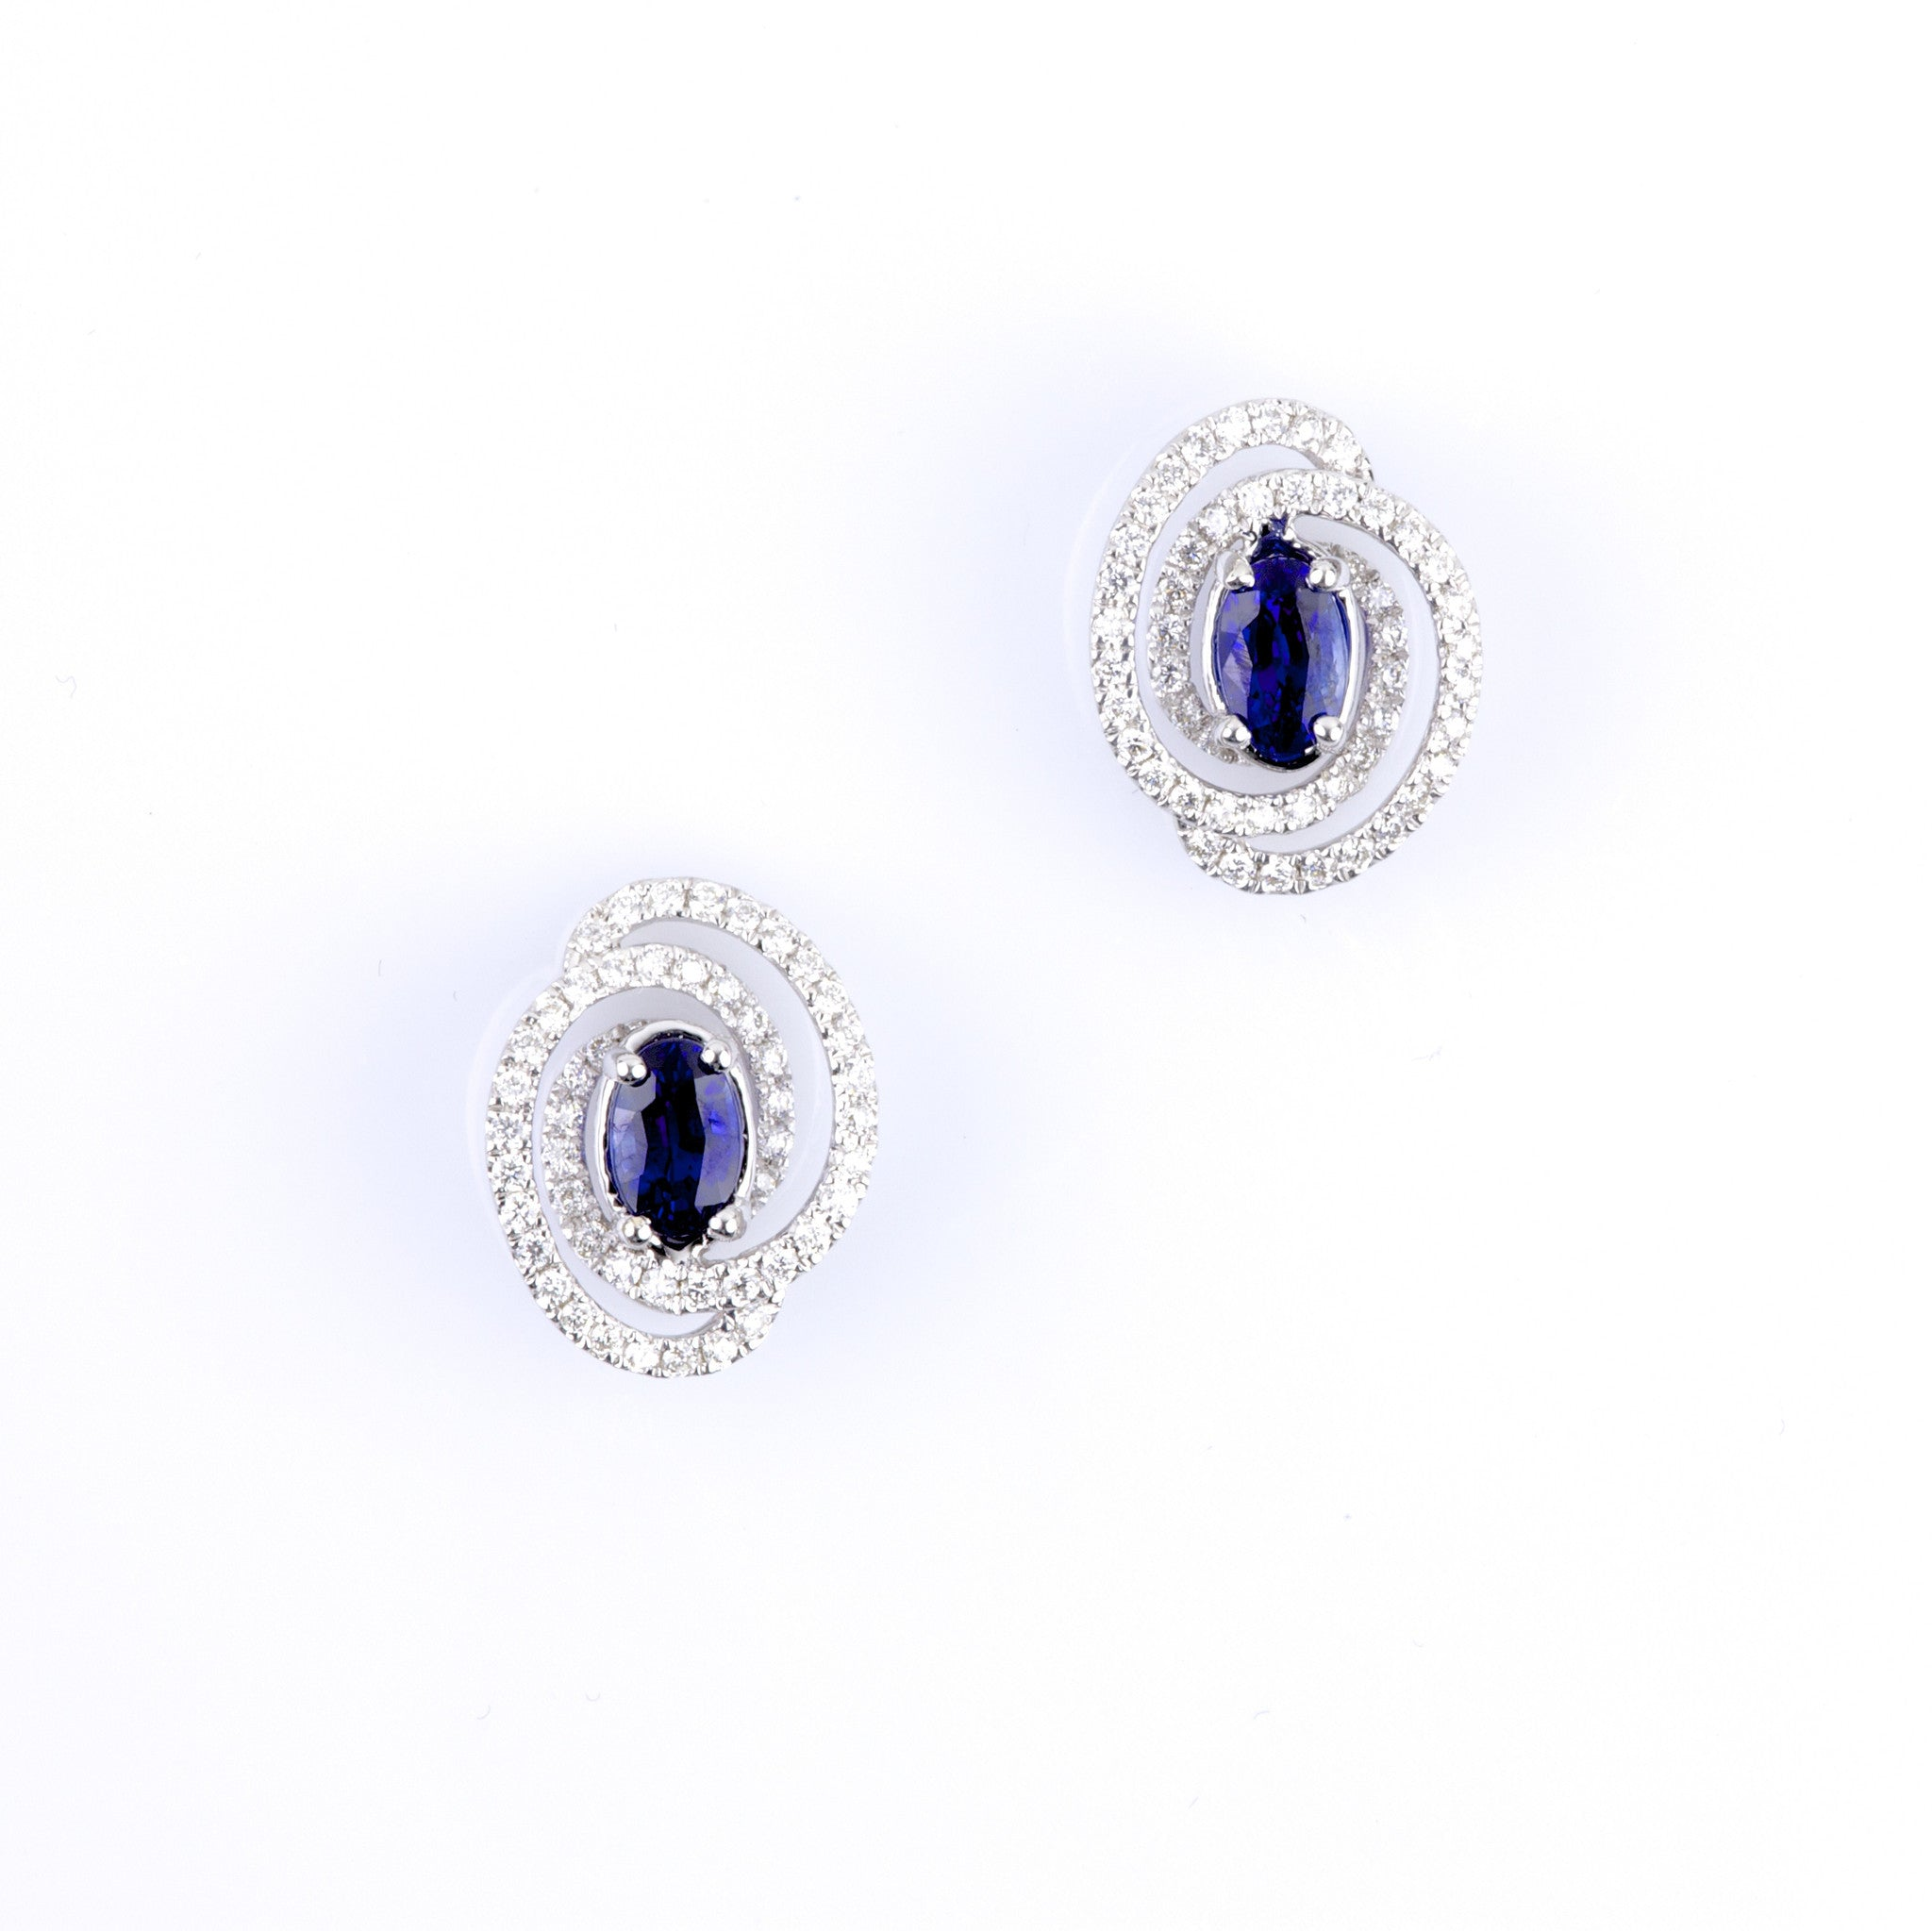 Oval Sapphire Earrings with Wrapped Diamond Halo